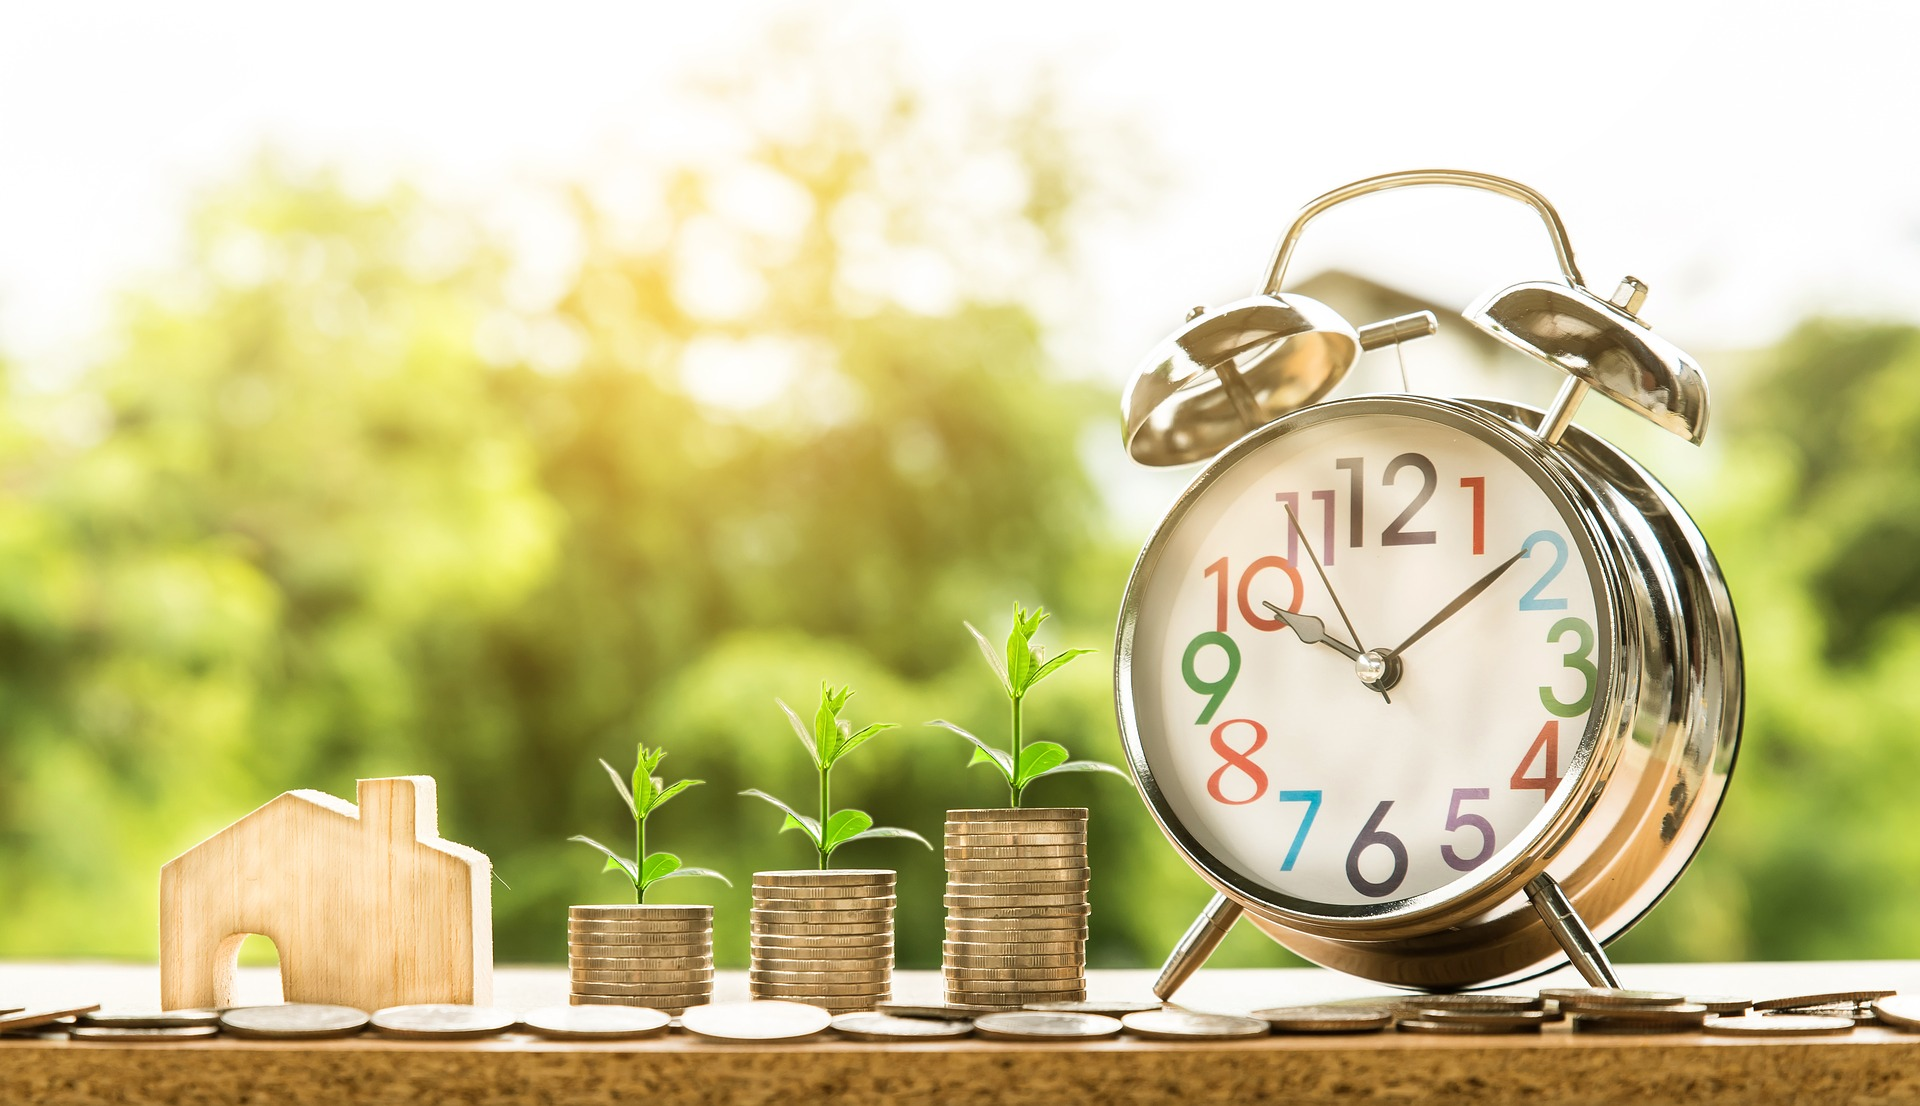 How to Save Money with little changes in Lifestyle